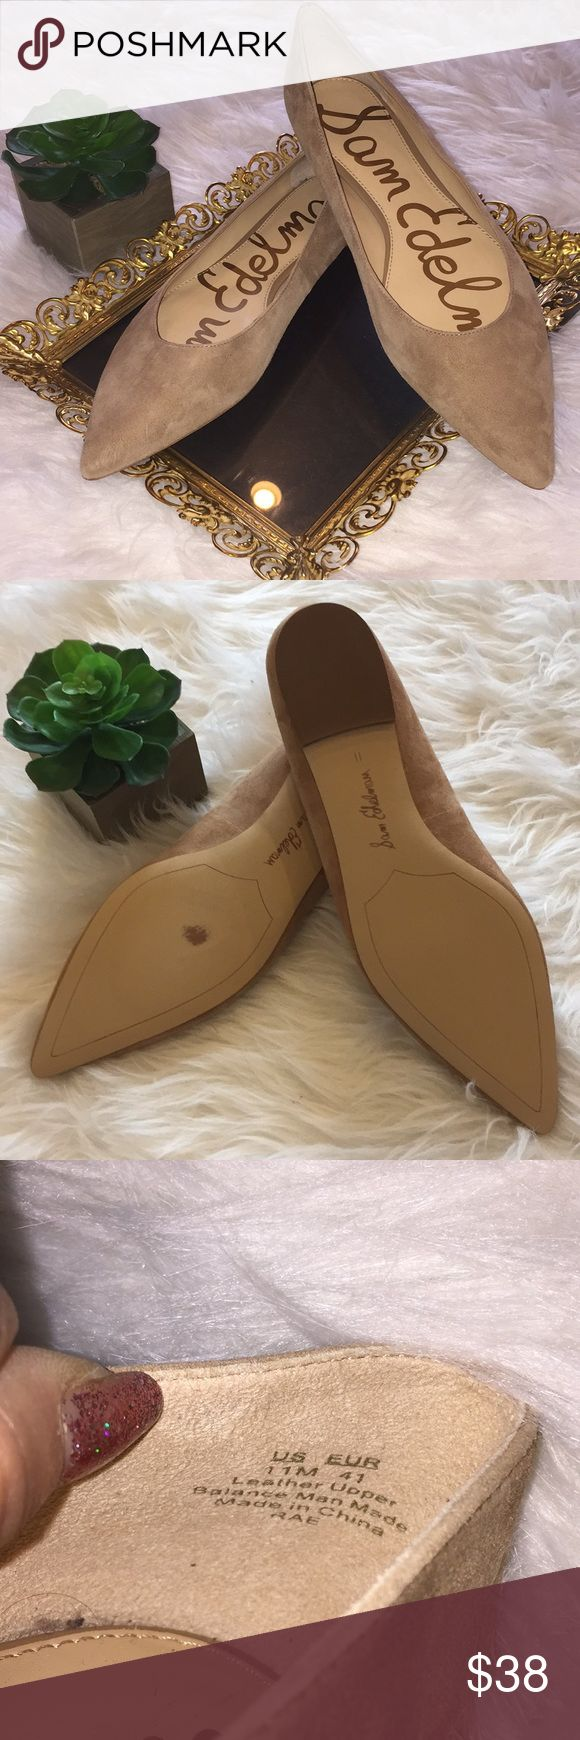 Sam Edelman Rae Tan Camel Suede Flats Sam Edelman Rae Tan Camel Suede Flats A lightly padded footbed adds comfort. Synthetic sole. Cute gold detail on heel Like New Pair with Jeans, Crop Pants, Summer Dresses and skirts; the color is ideal which makes the options endless!  Size 11 Shoes Flats & Loafers